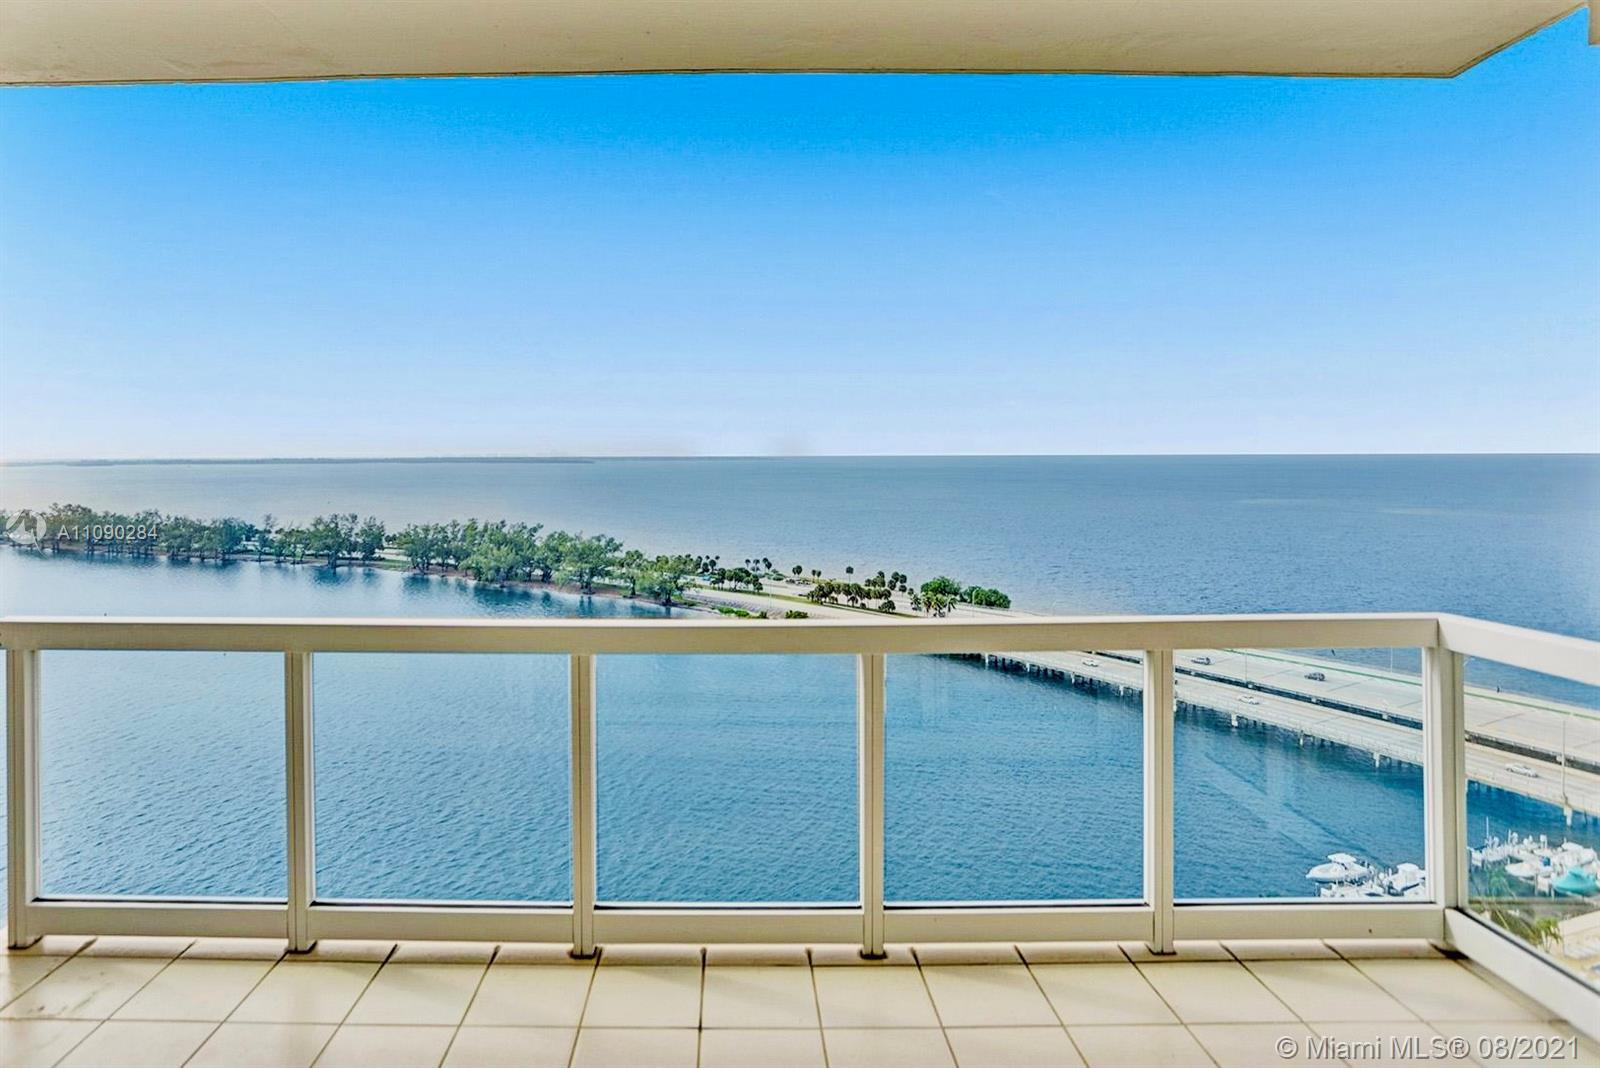 Waterfront condo with the best bay views located in the heart of Brickell!  This 20th floor unit has